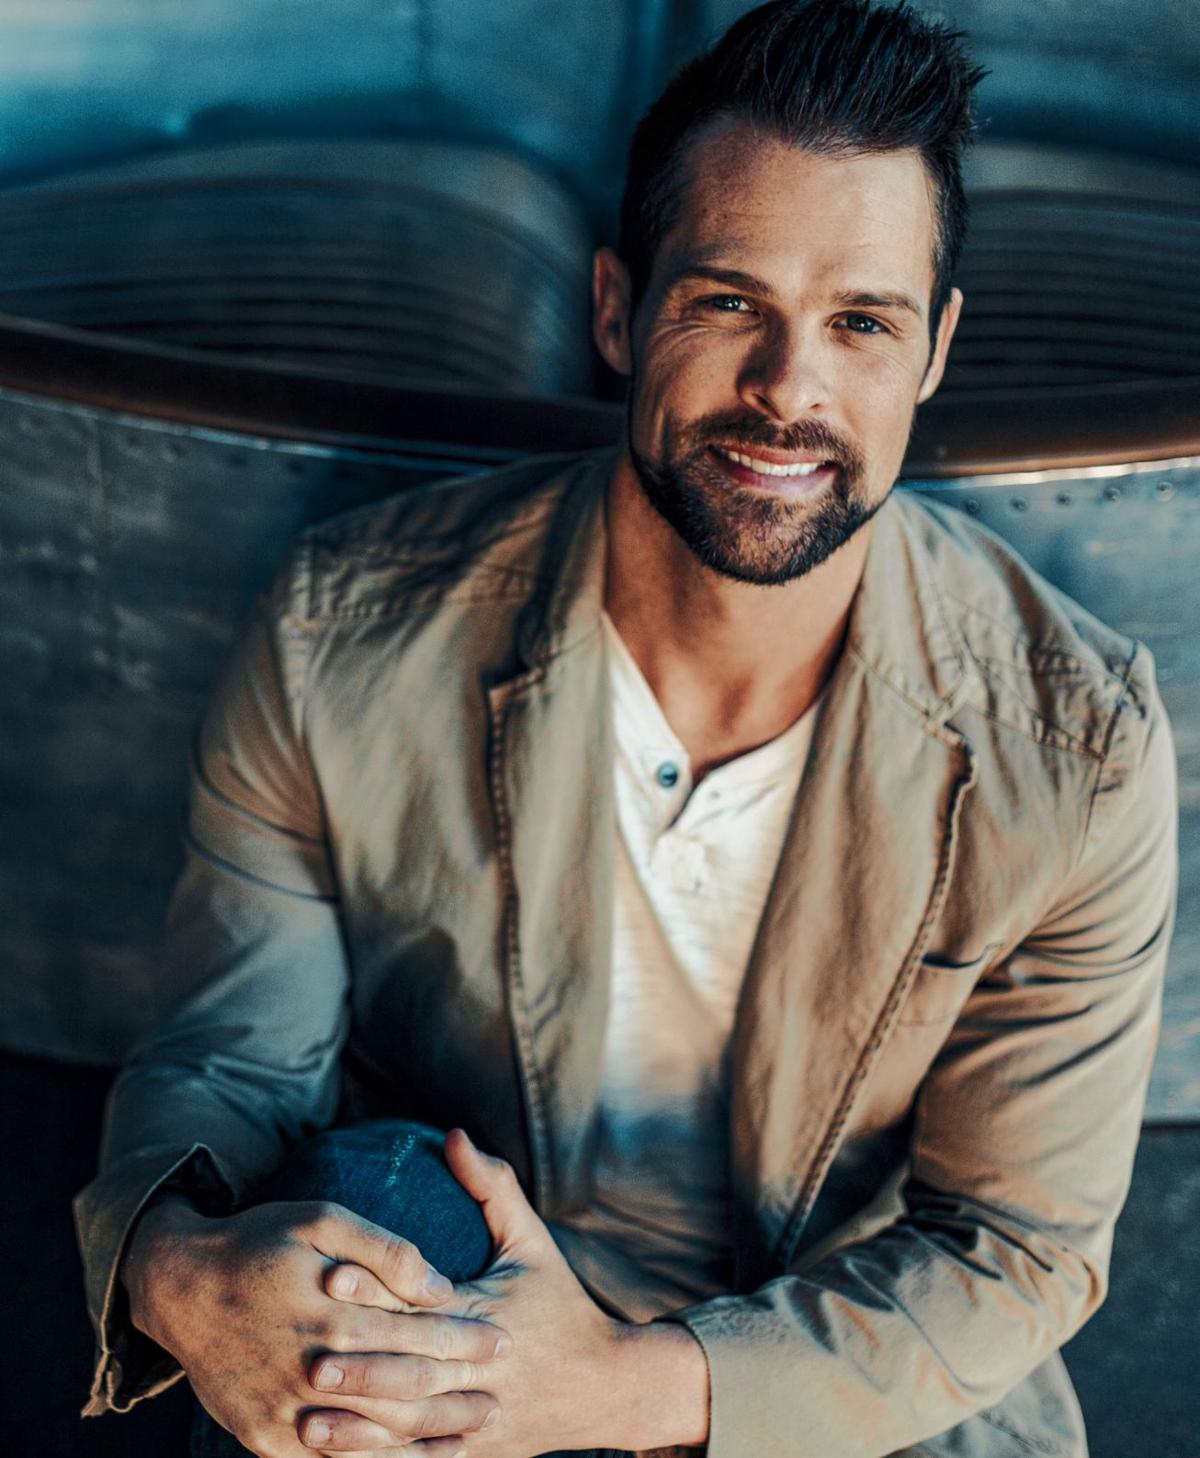 Adam Crabb to perform free solo concert in West Frankfort